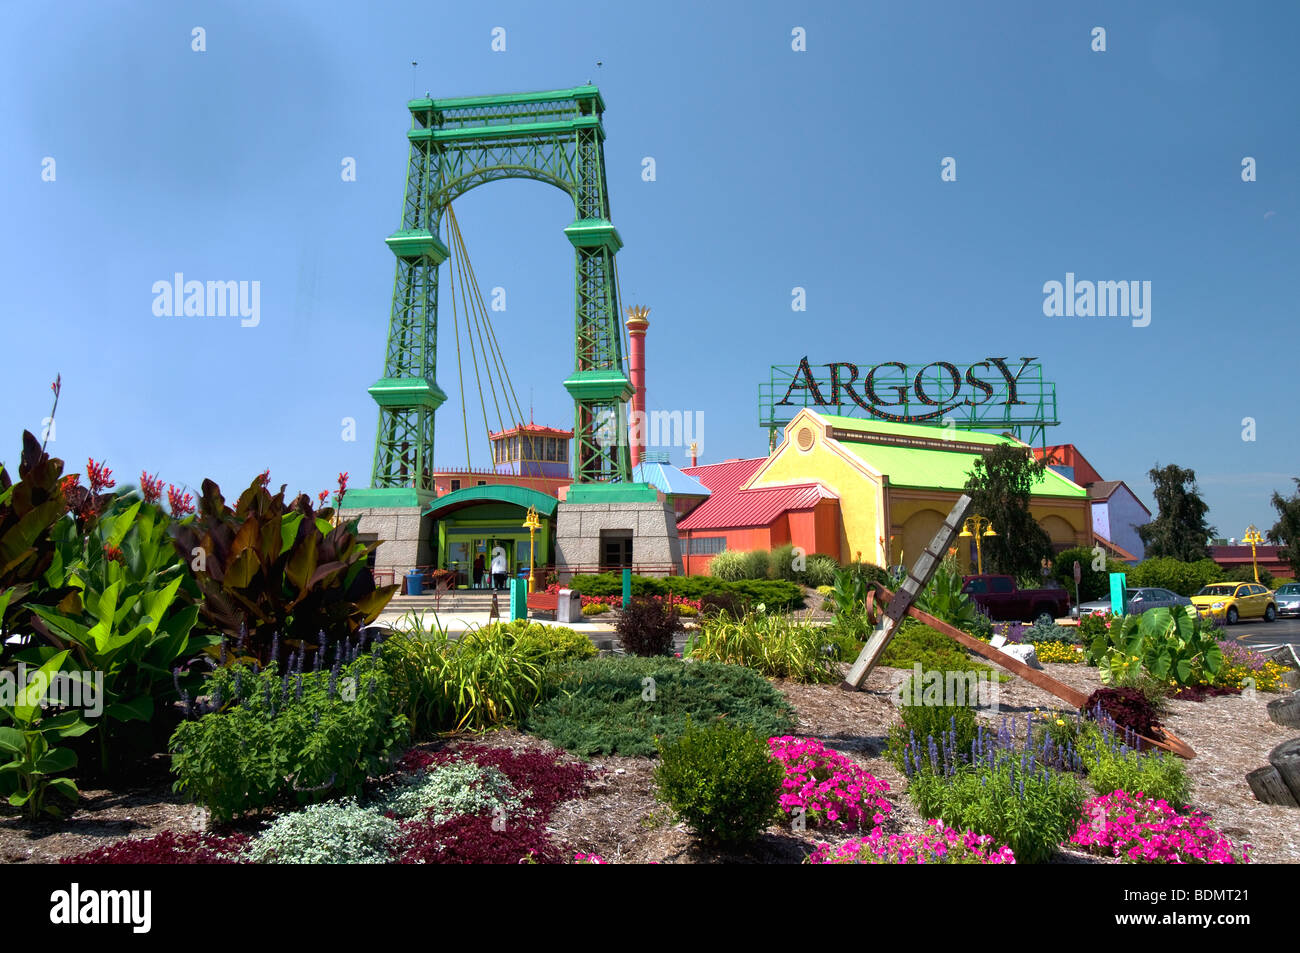 Argosy Casino On The Mississippi River In Alton Illinois